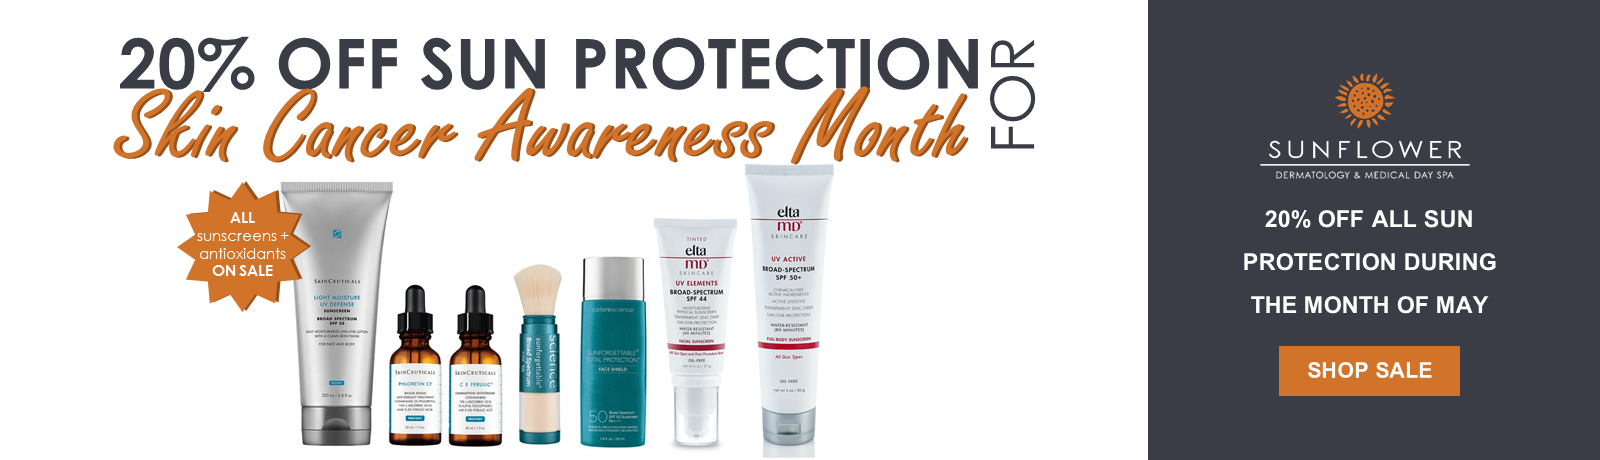 20% Off Sun Protection for Skin Cancer Awareness Month